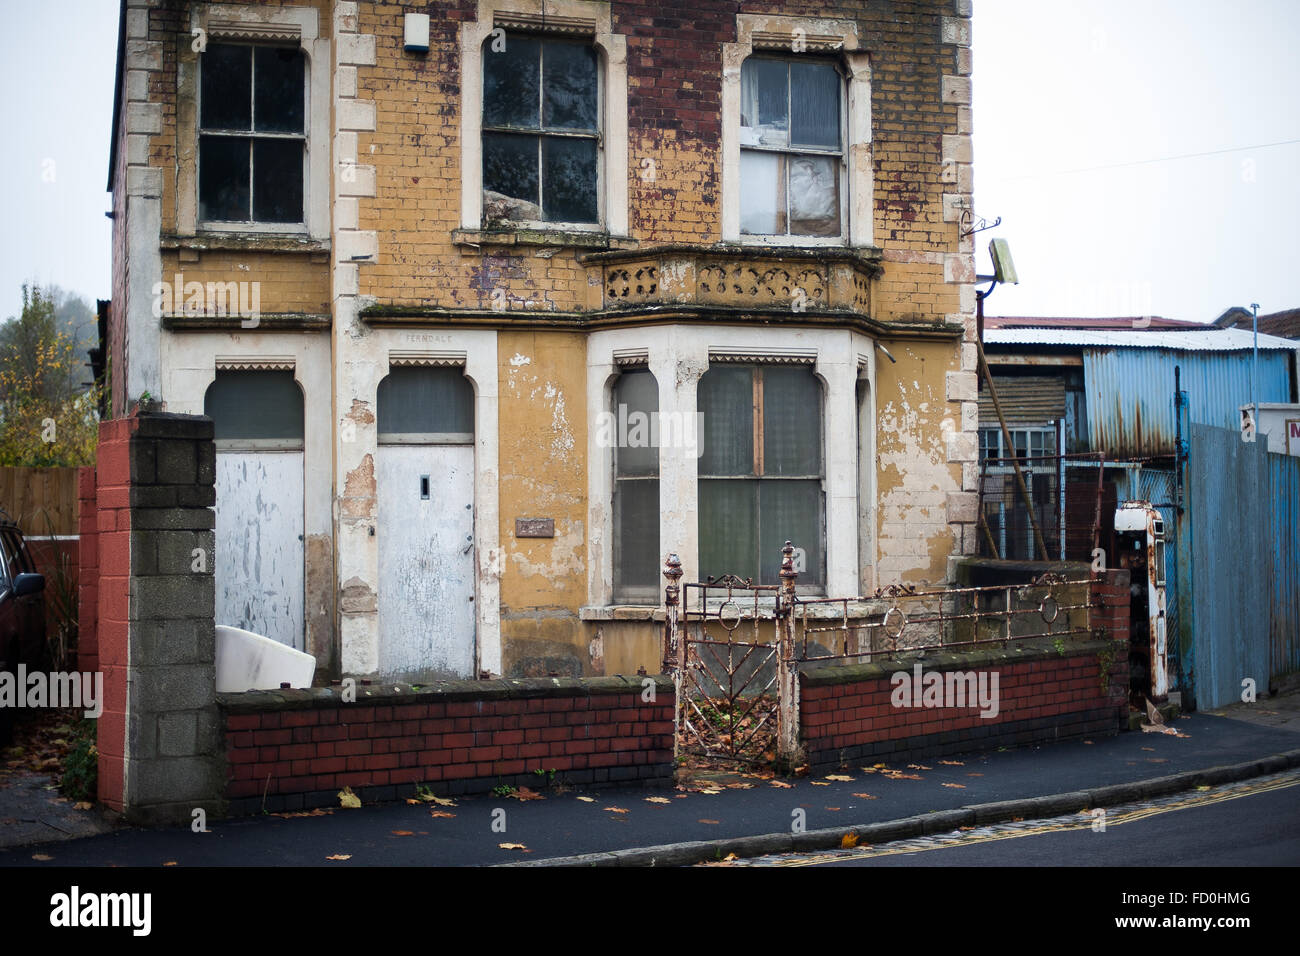 Decrepit dilapidated house in Bristol, England - Stock Image